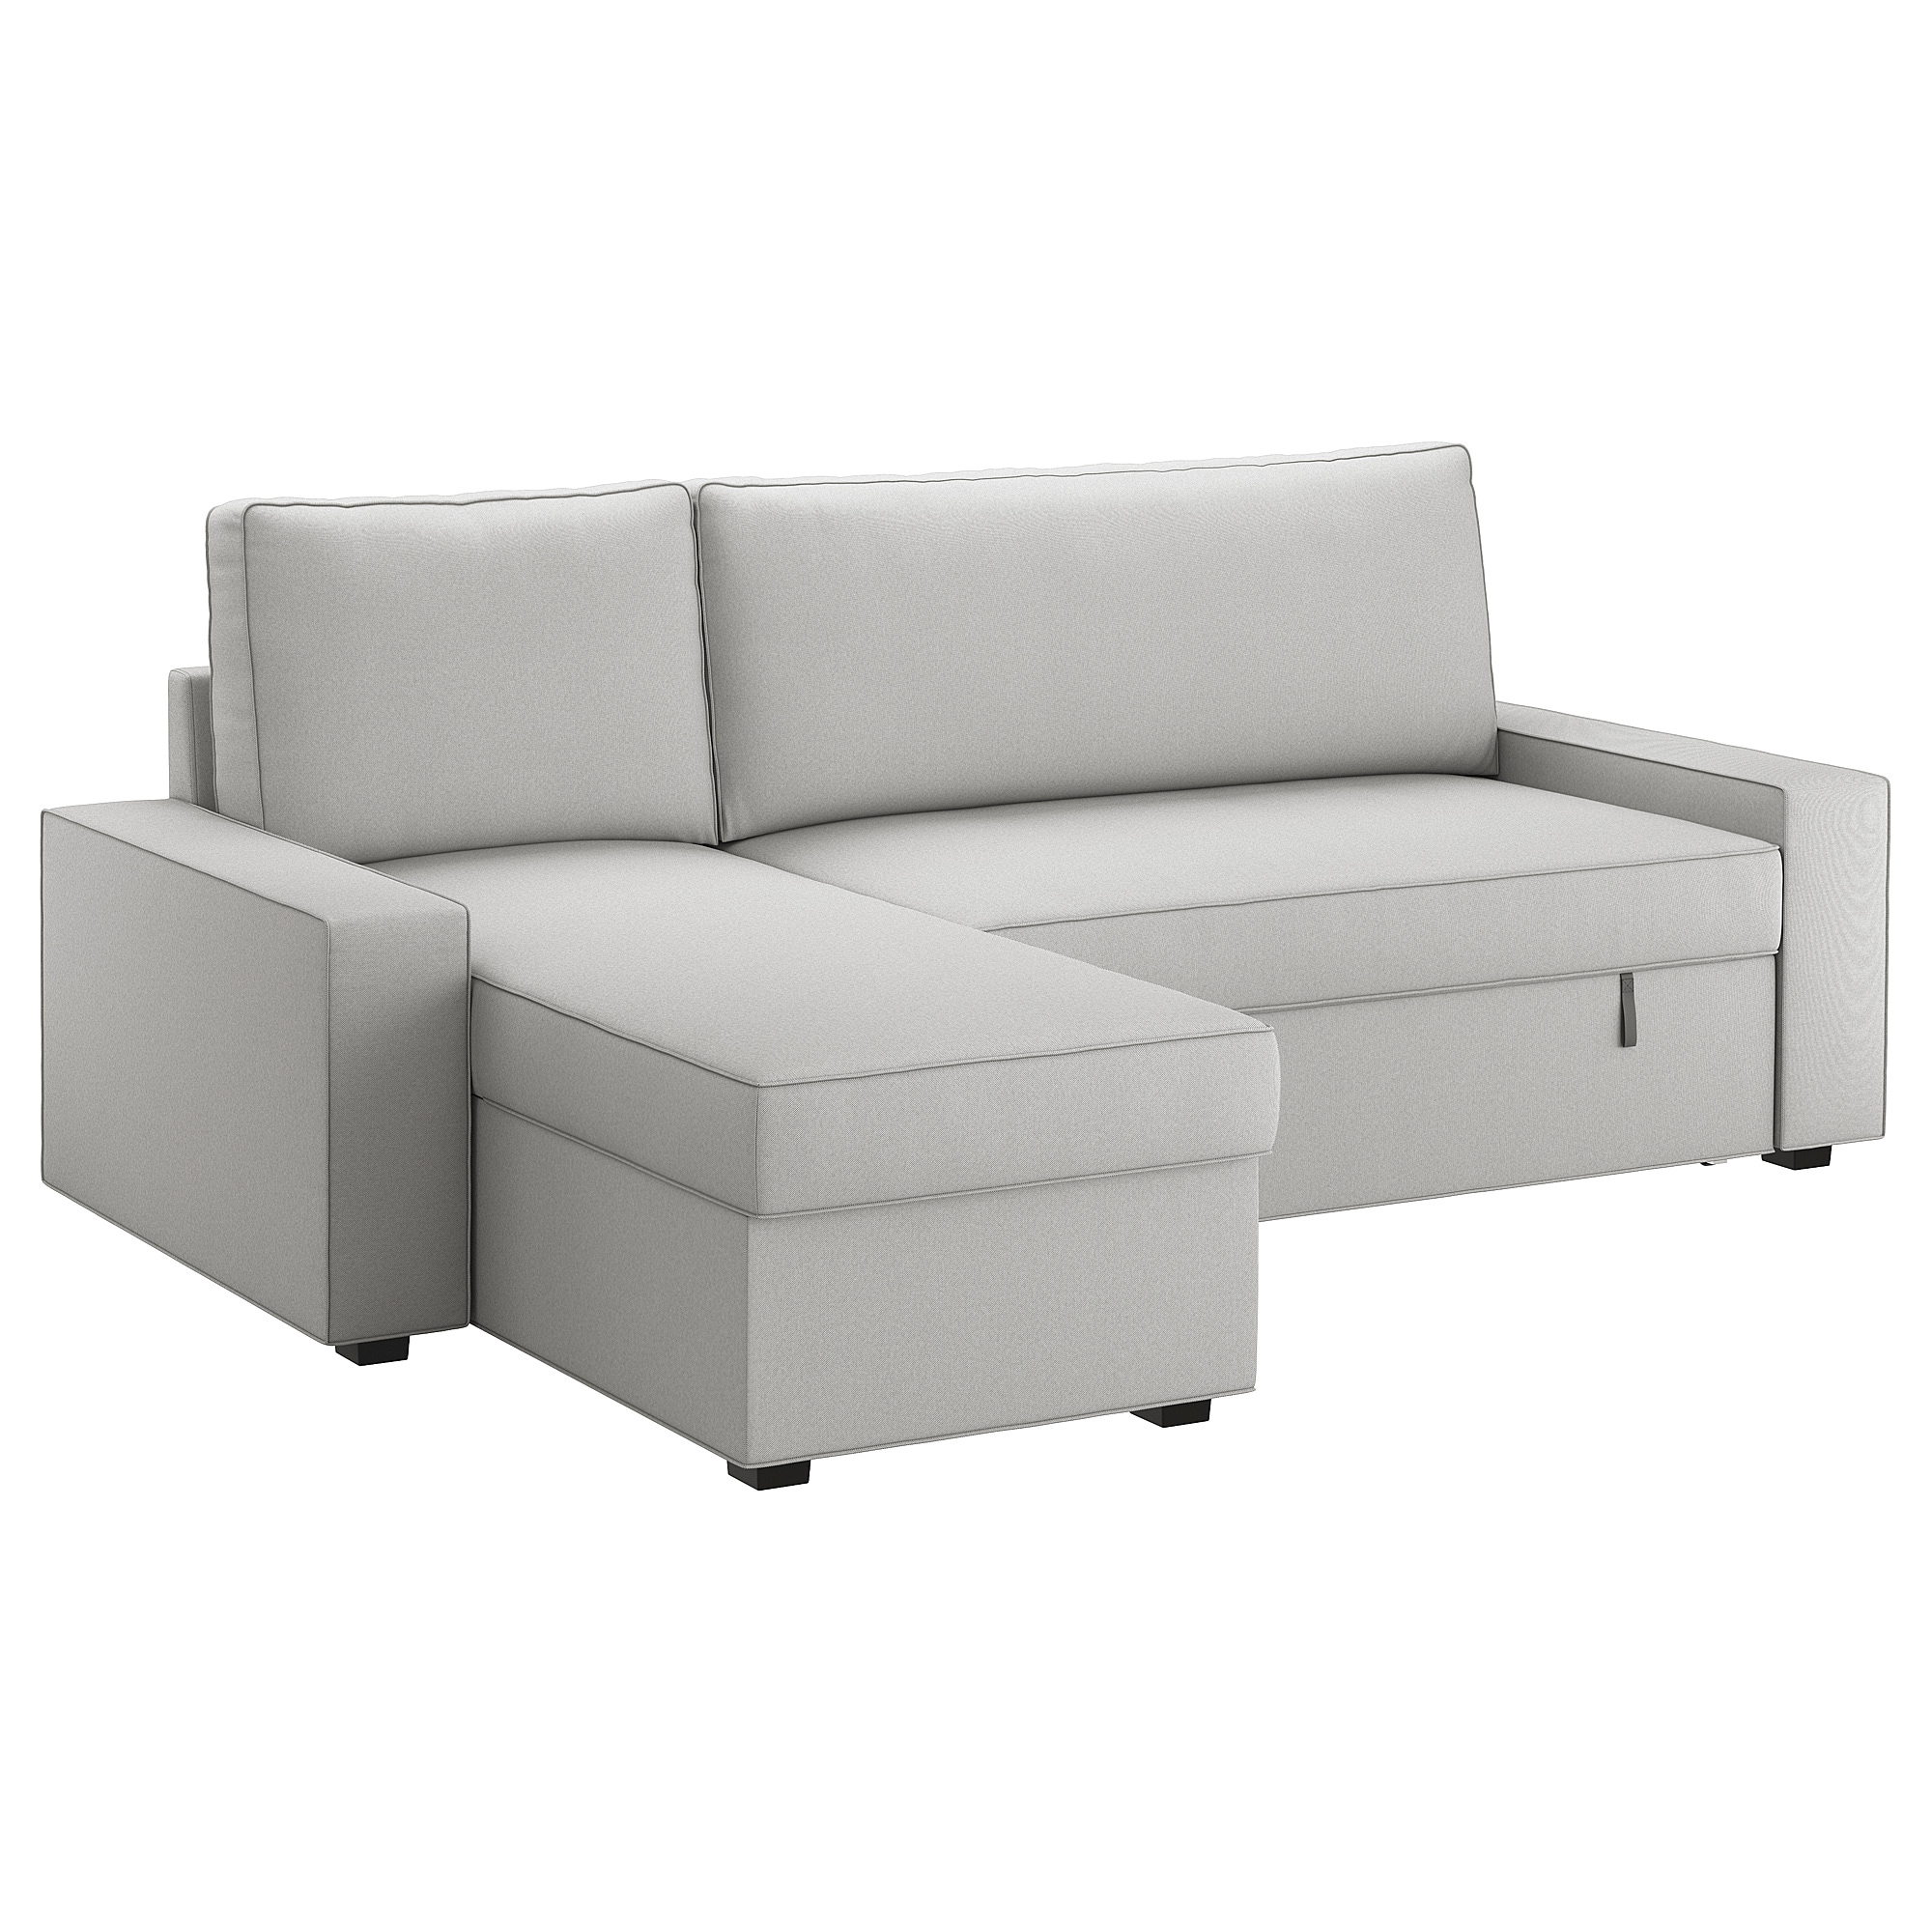 Sofas Chaise Longue Cama S5d8 Vilasund sofa Bed with Chaise Longue orrsta Light Grey Ikea